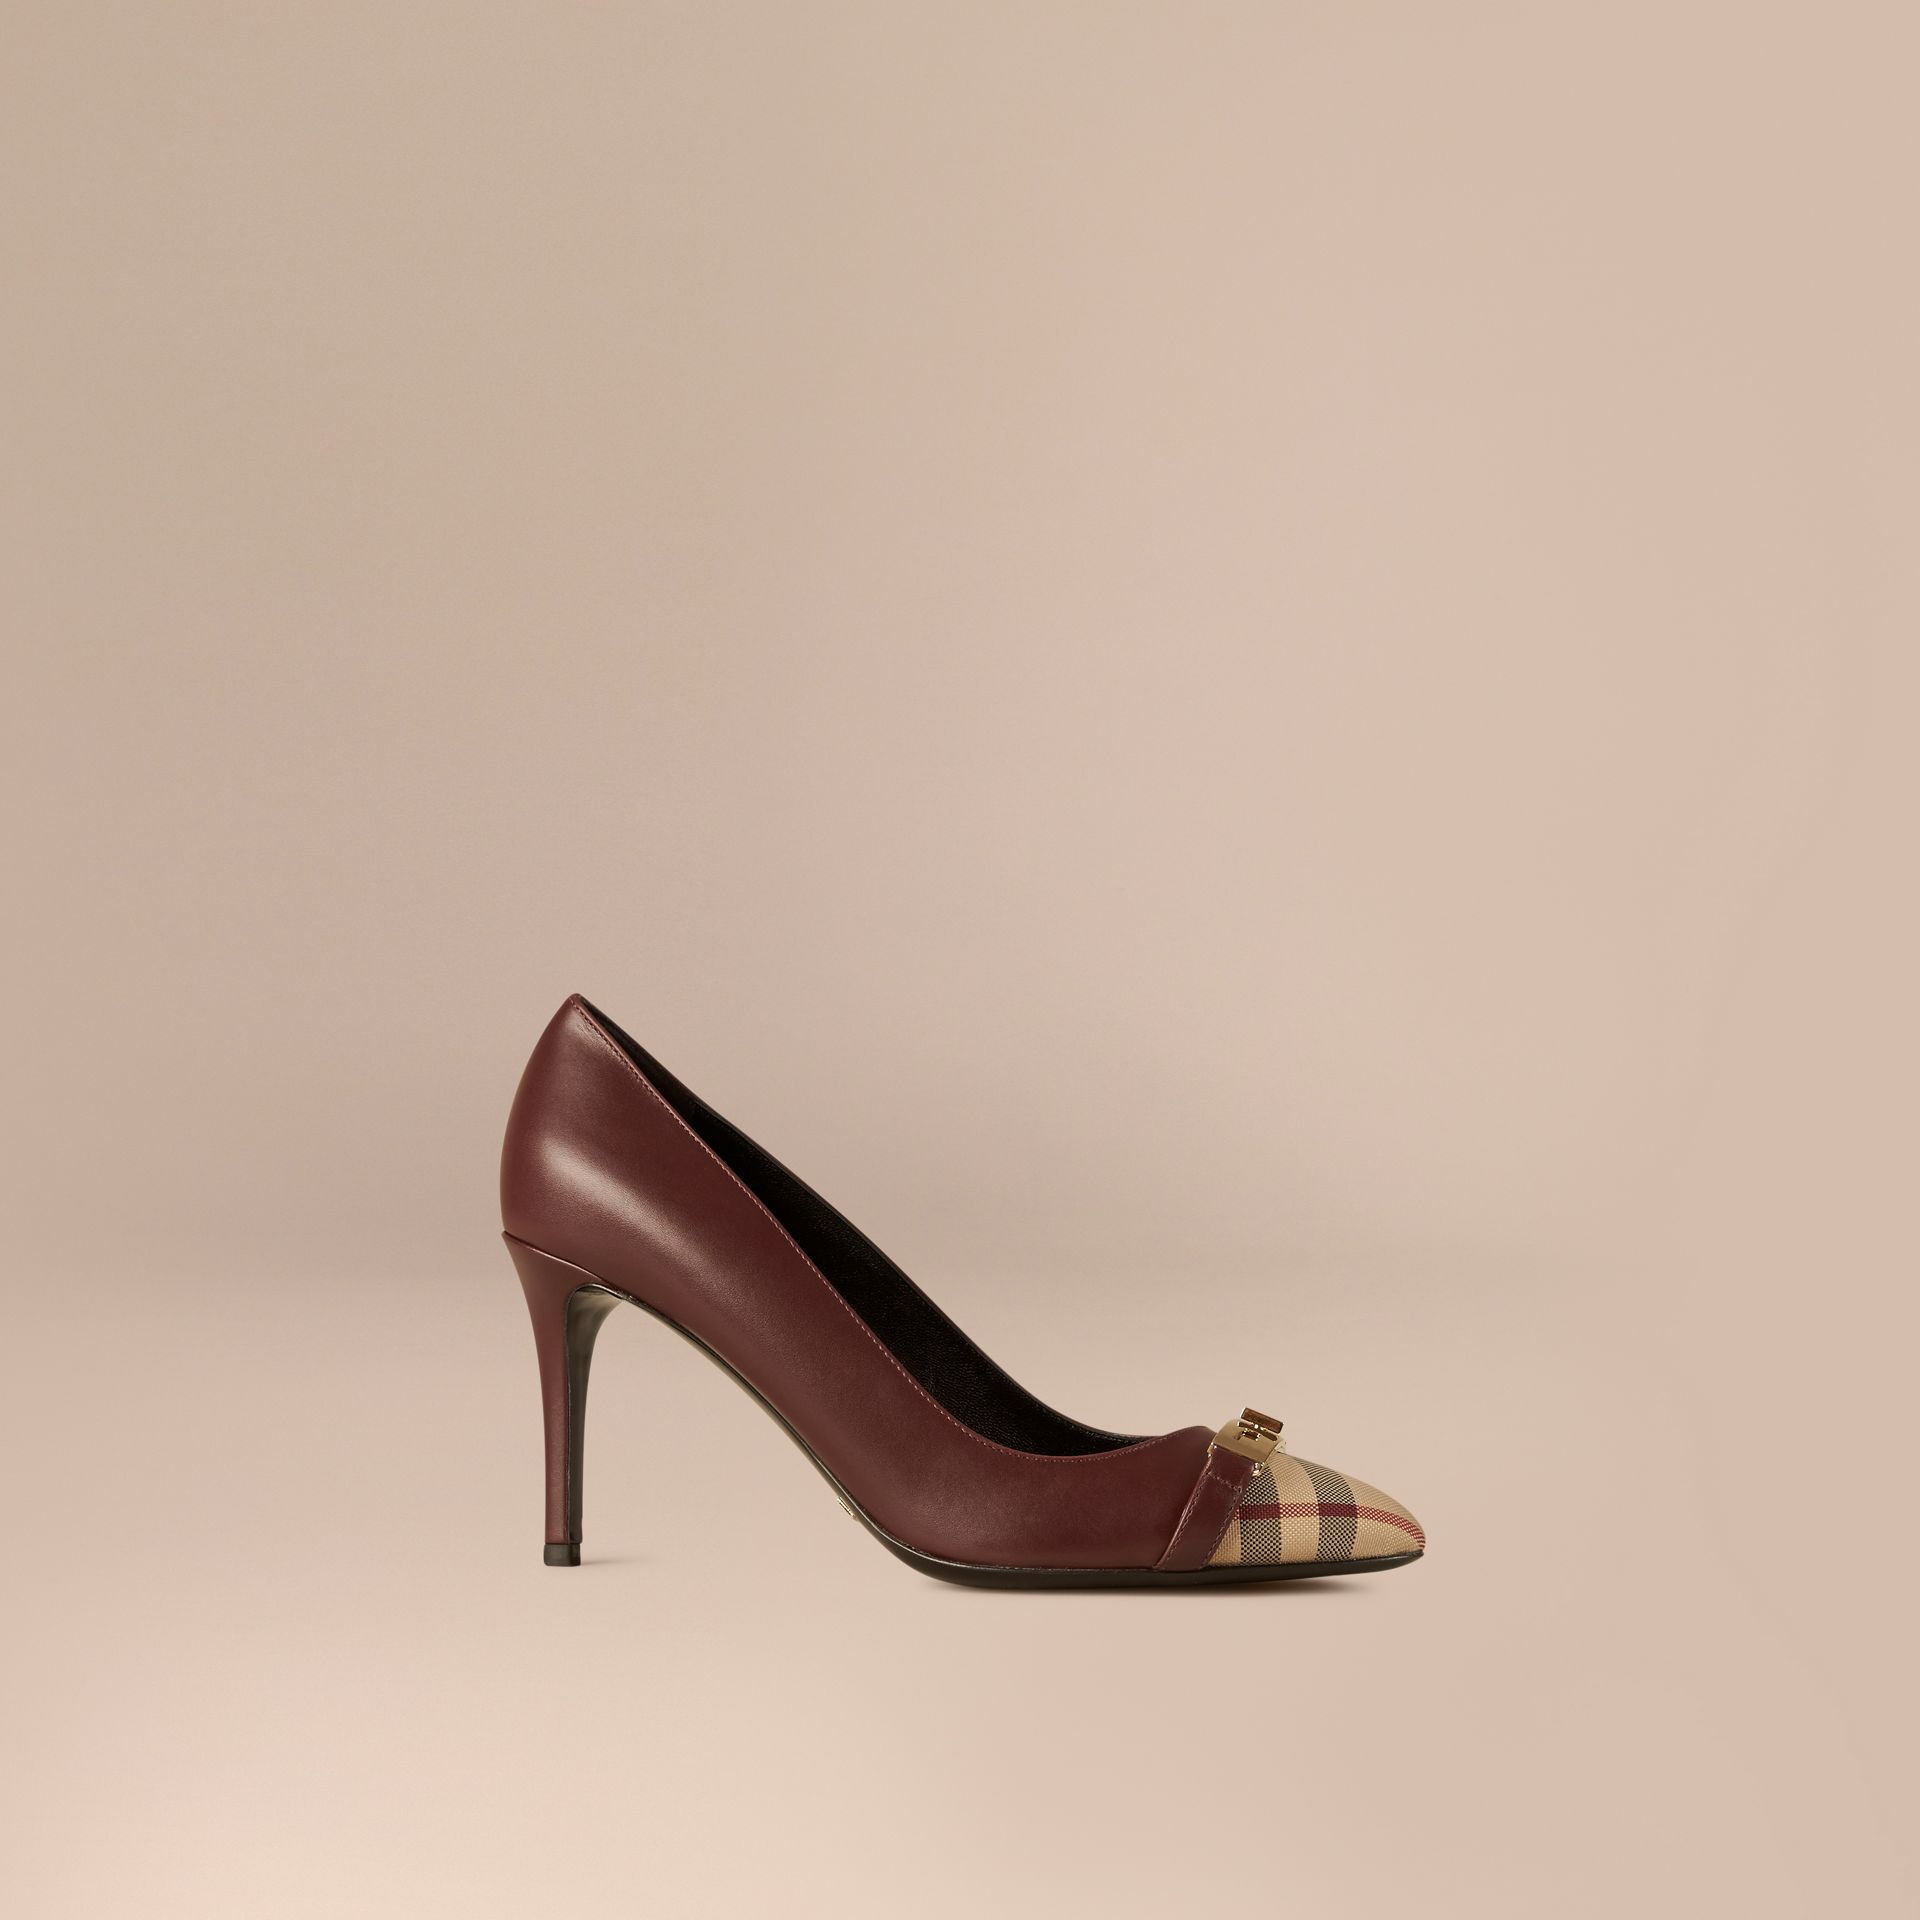 Oxblood Horseferry Check Leather Pumps Oxblood - gallery image 1